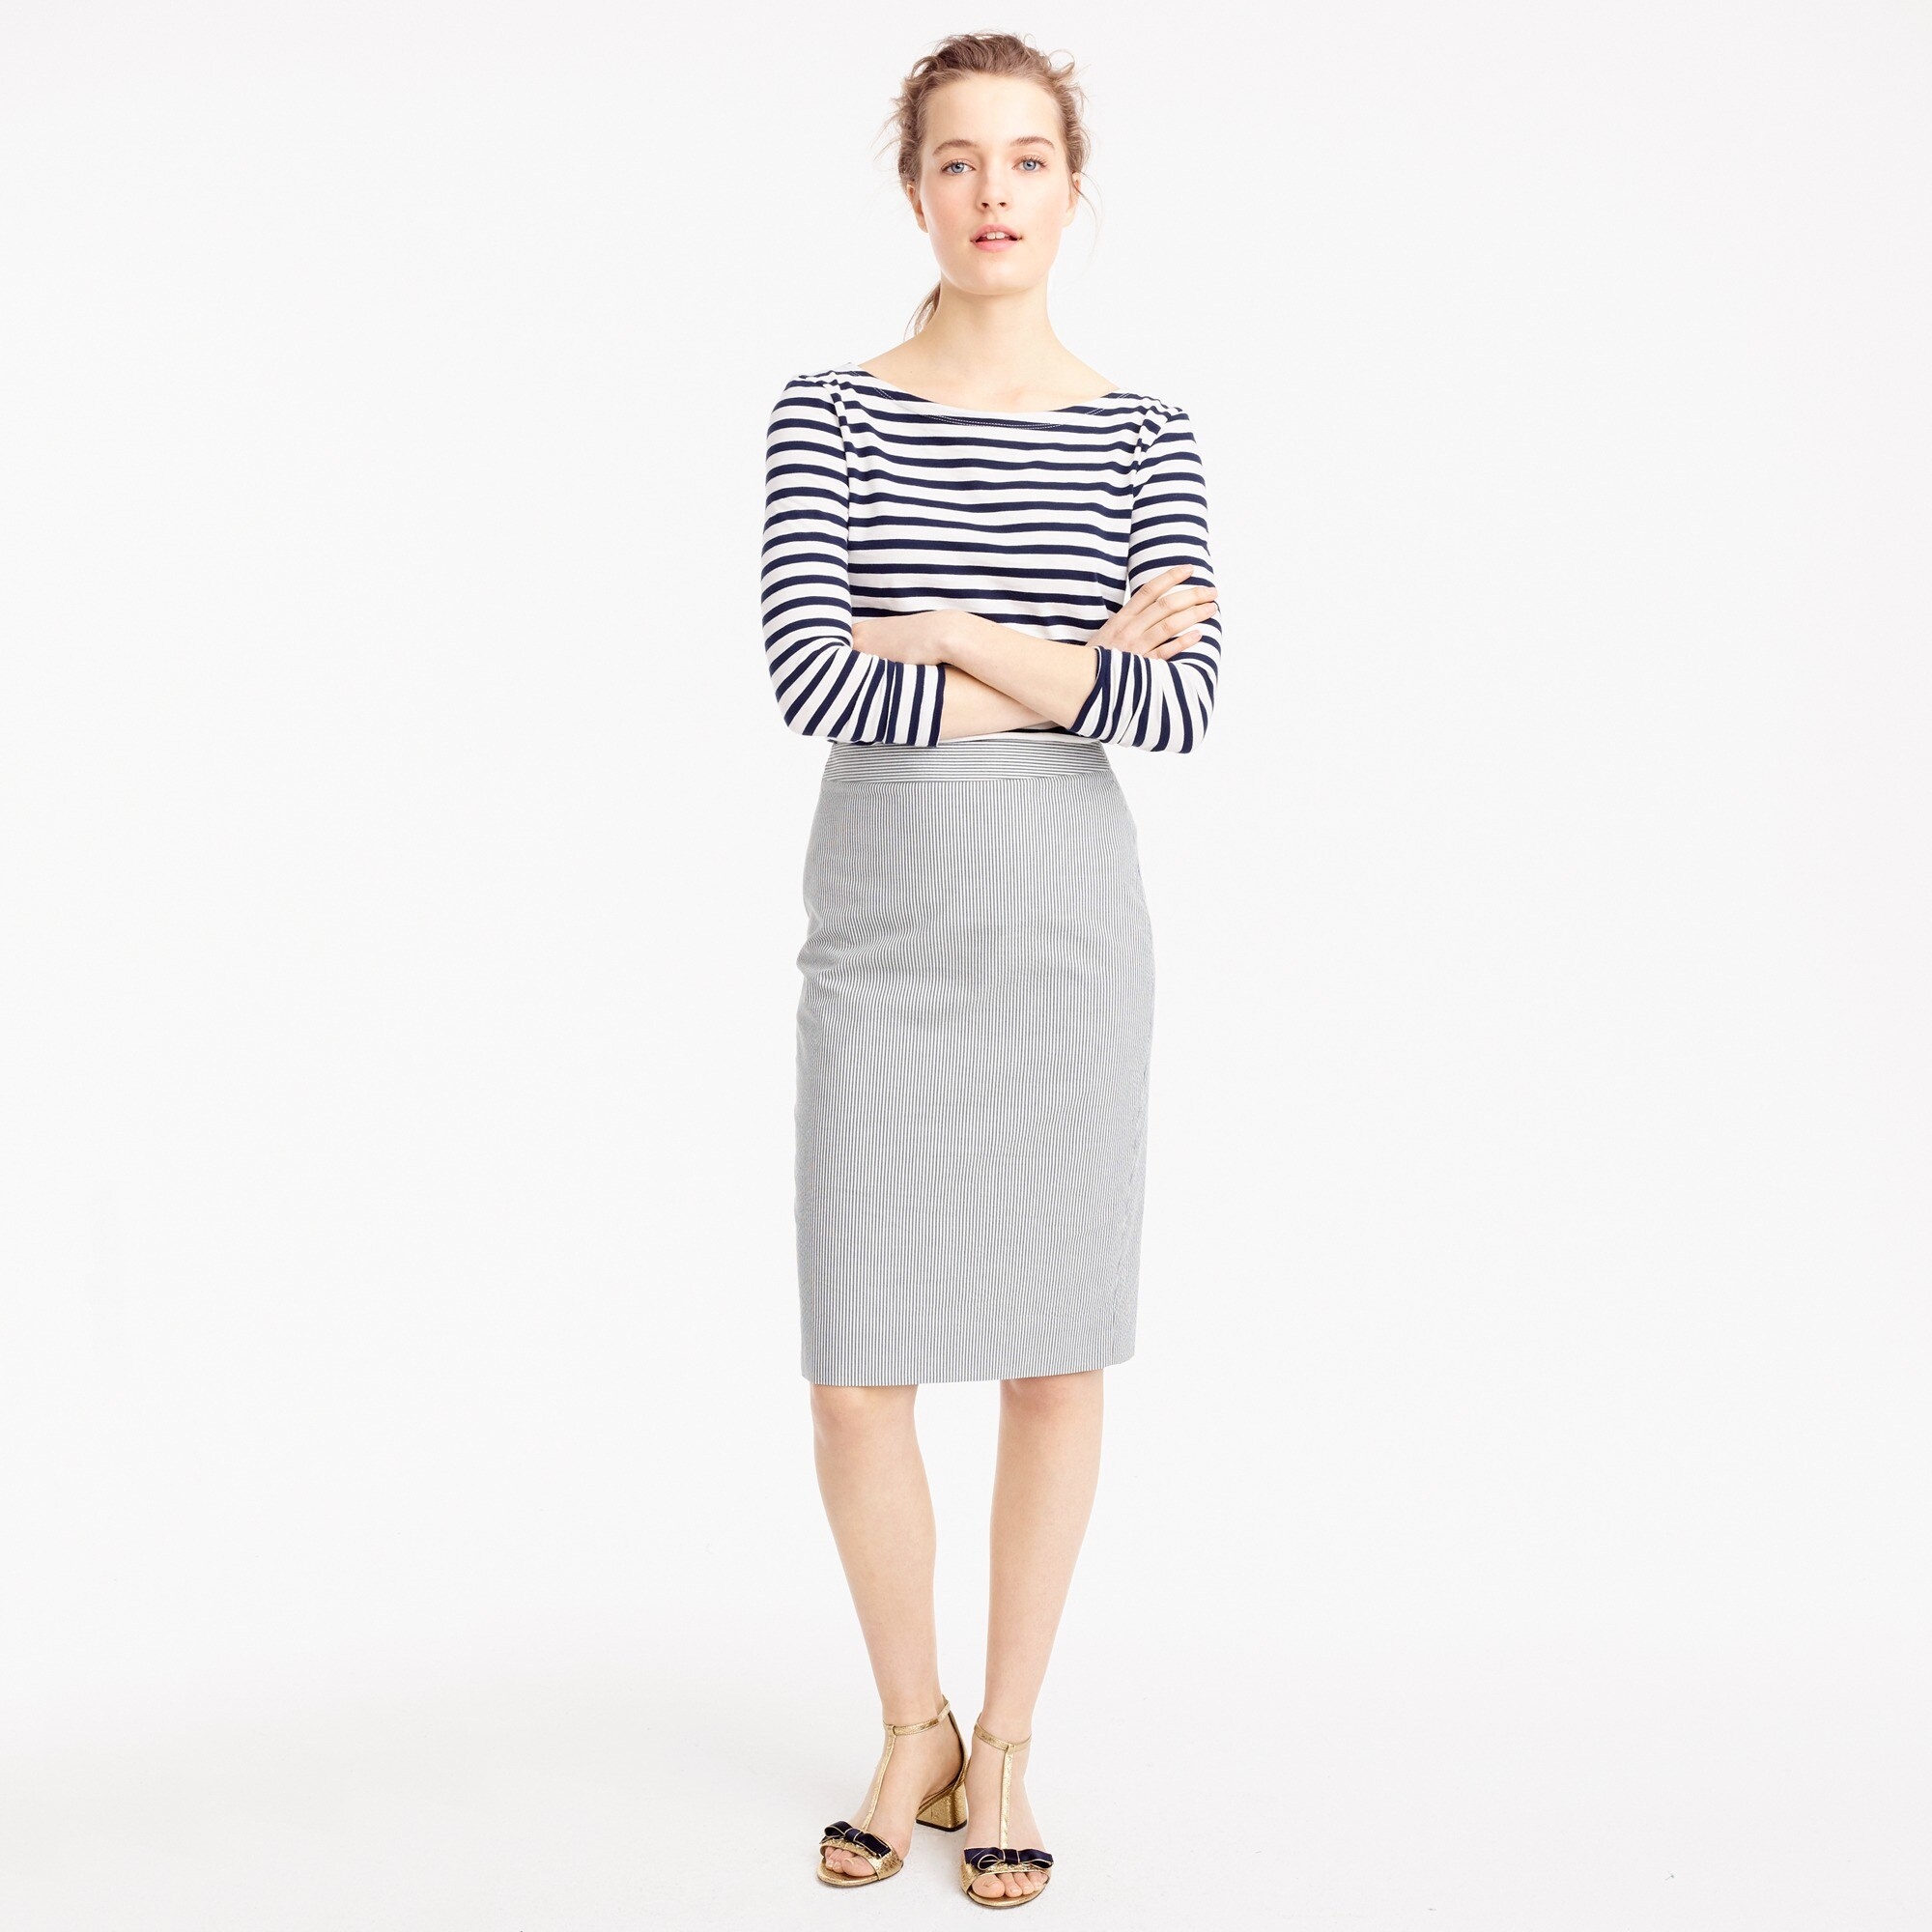 Pencil skirt in seersucker